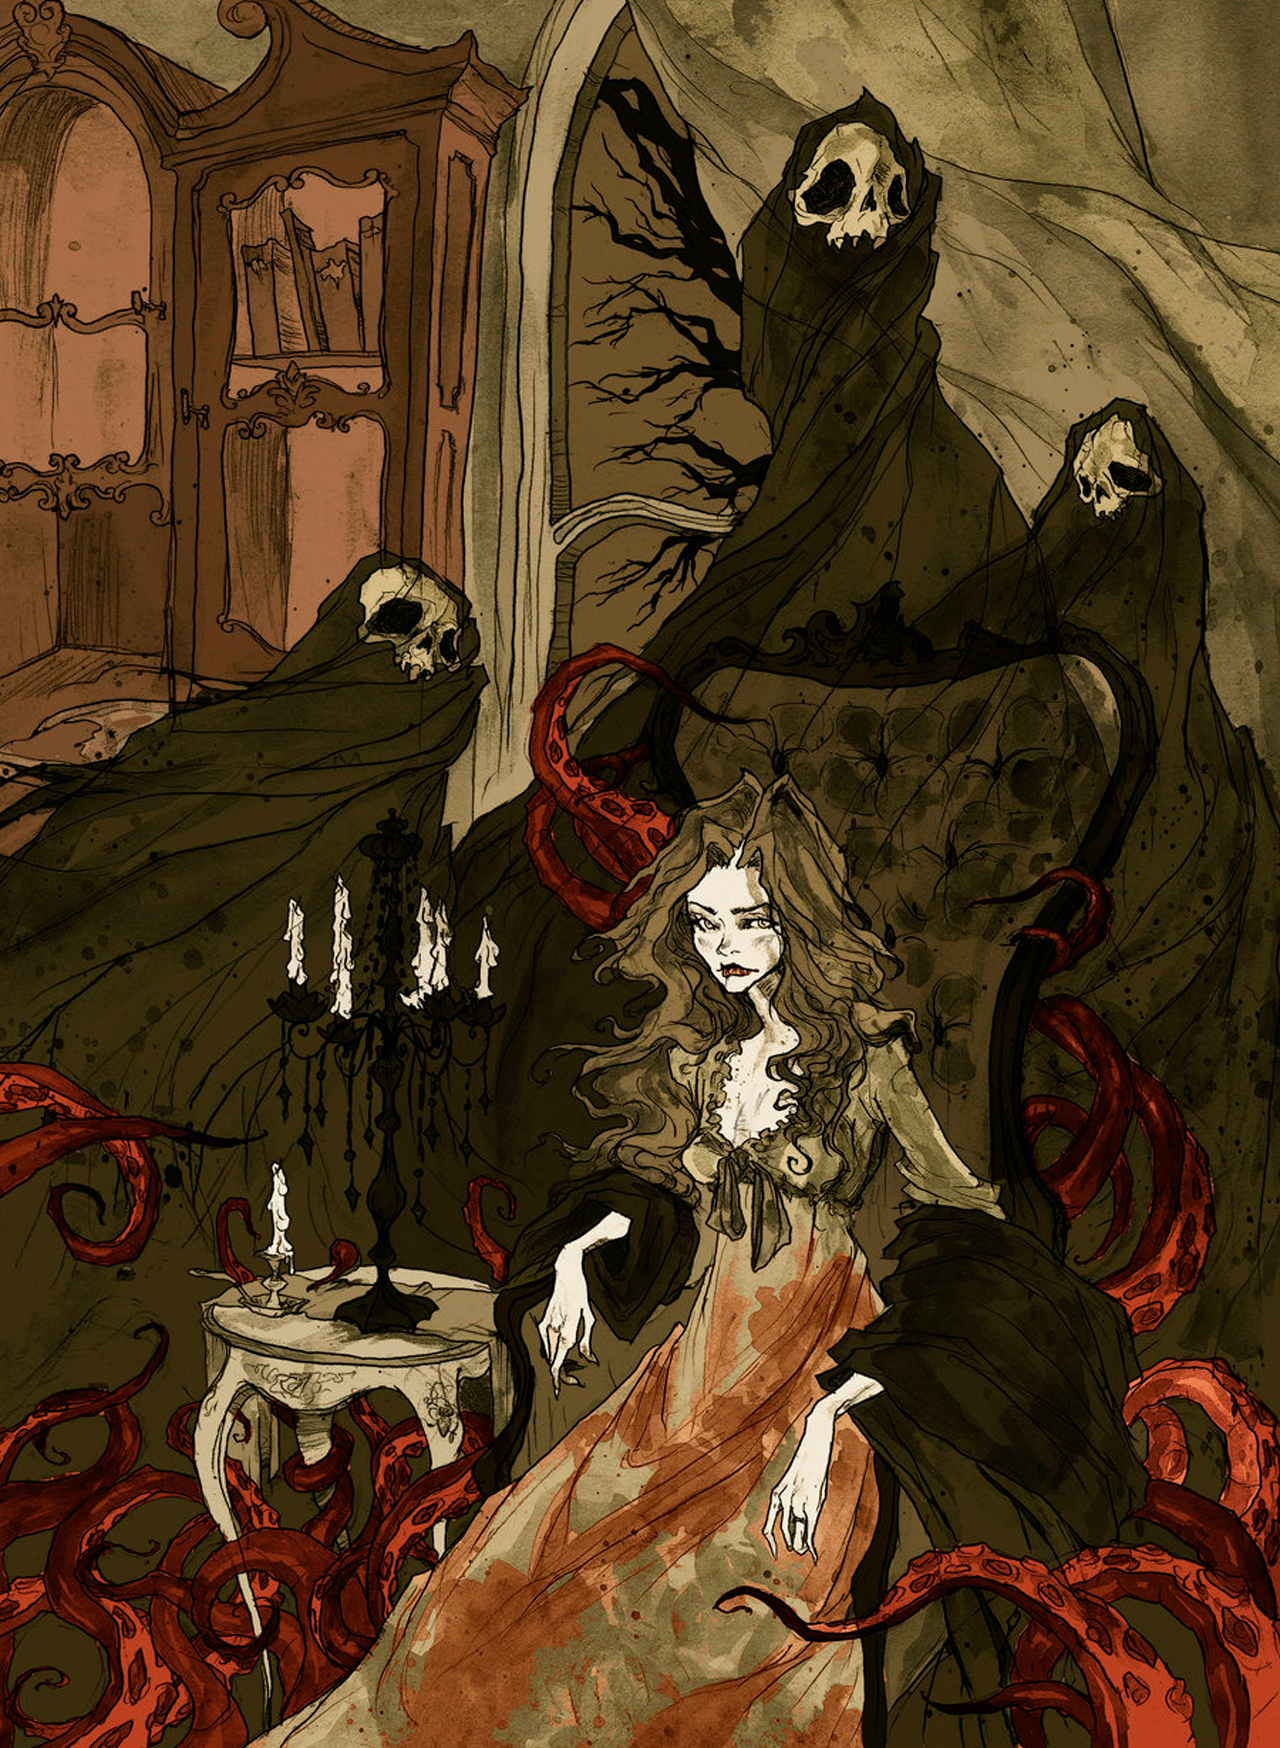 Nightmares of the Alchemist's Wife by Abigail Larson